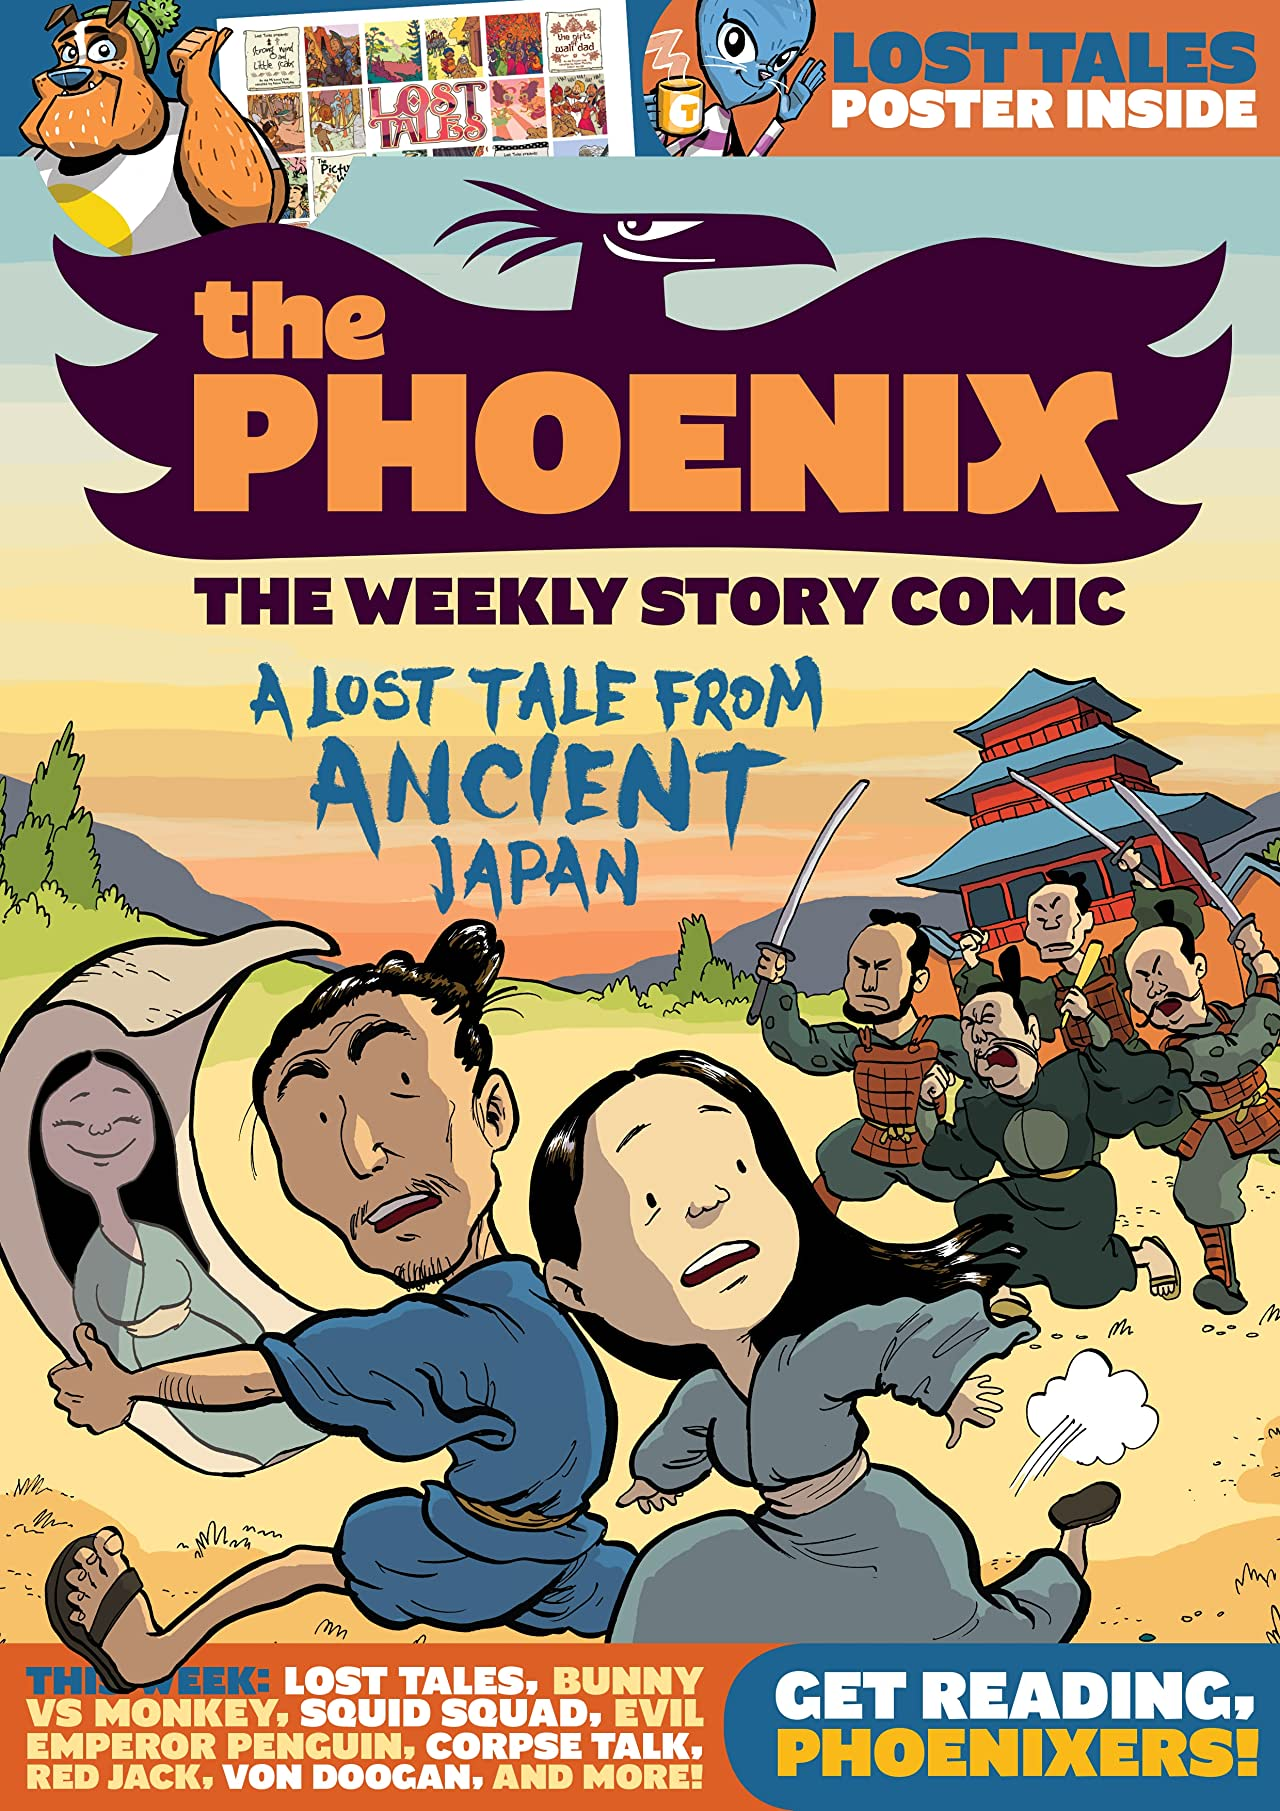 The Phoenix #141: The Weekly Story Comic